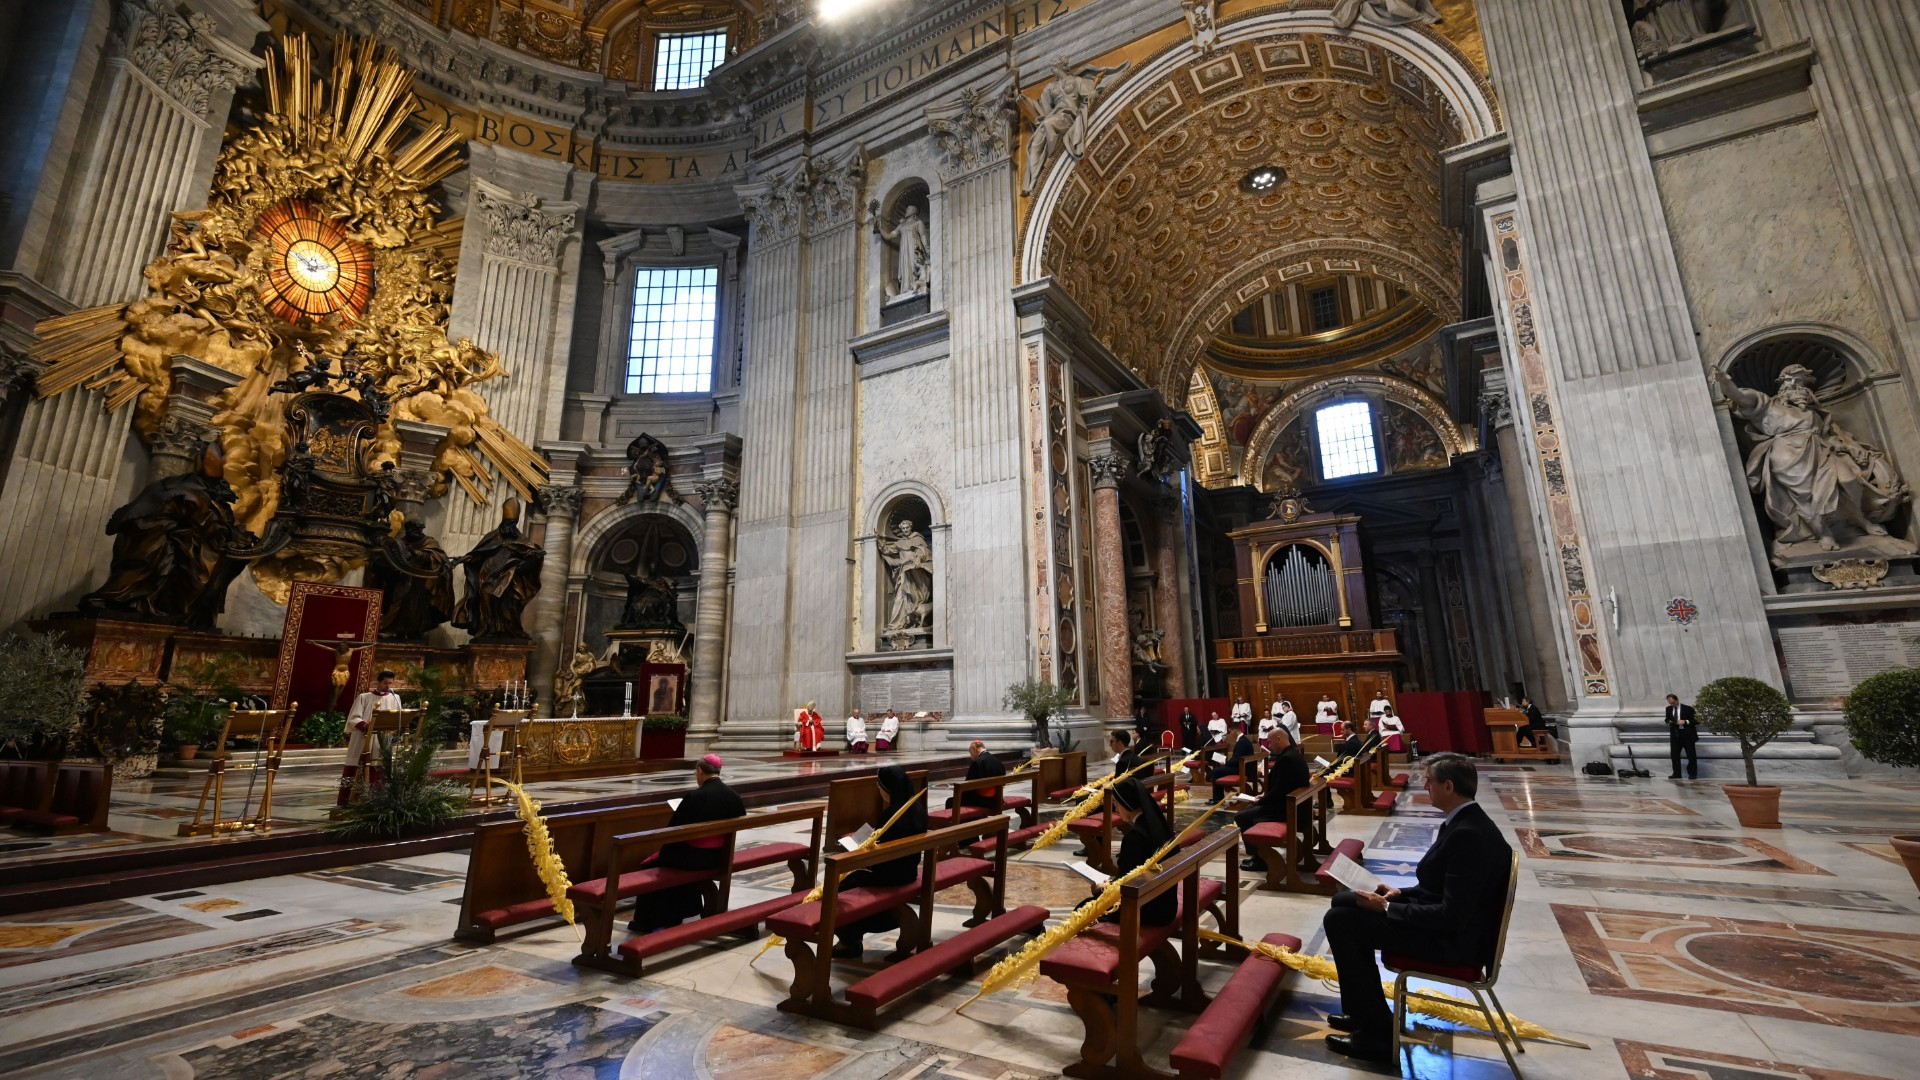 A general view shows Pope Francis (Rear C) and attendees during Palm Sunday mass behind closed doors at the Chair of Saint Peter in St. Peter's Basilica mass on April 5, 2020 in The Vatican, during the lockdown aimed at curbing the spread of the COVID-19 infection, caused by the novel coronavirus. (Alberto Pizzoli/POOL/AFP/Getty Images)